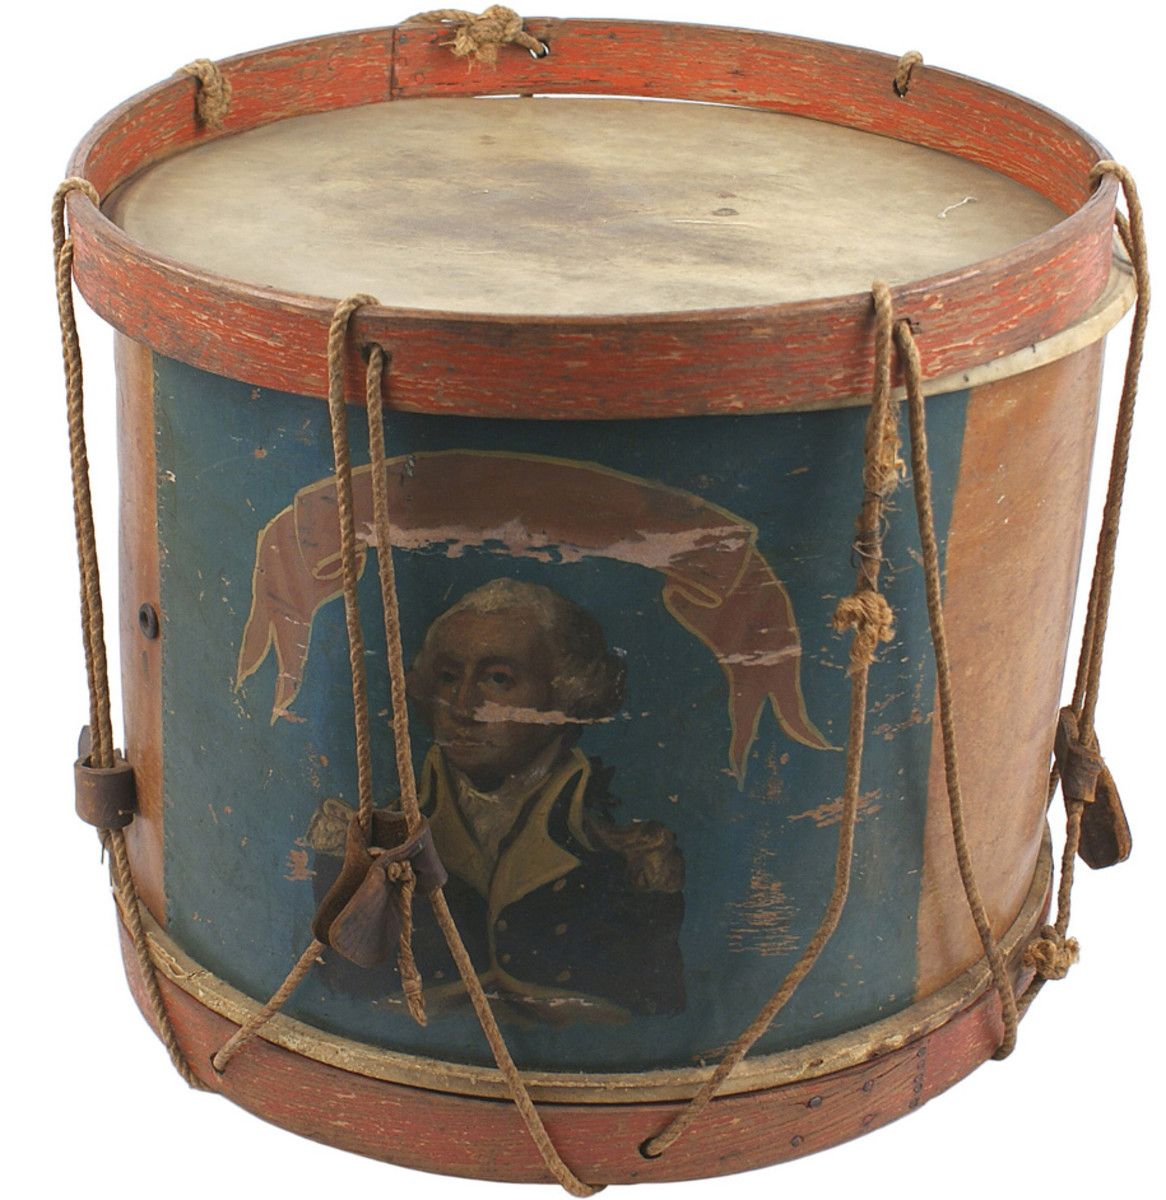 Pre-Civil War era snare drum with basswood body, Washington portrait (Opening bid: $1,500).